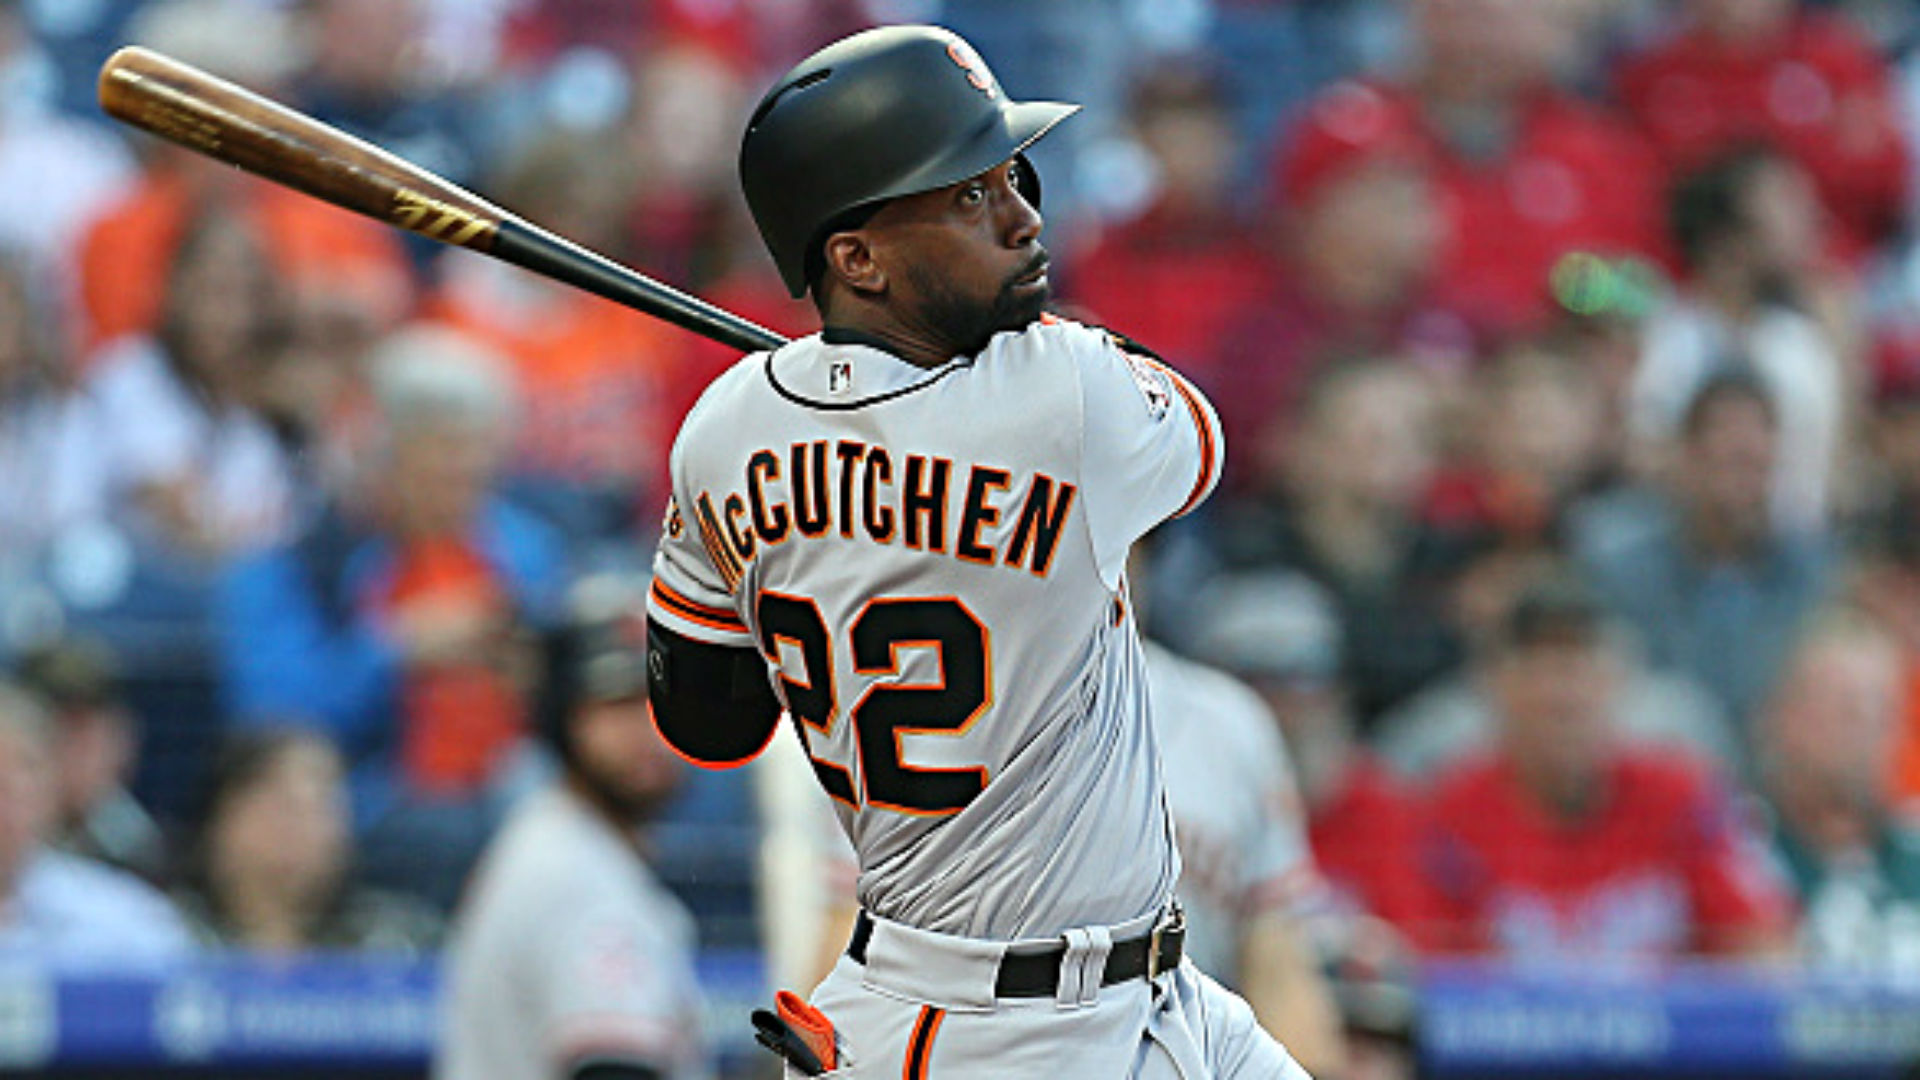 Andrew McCutchen's return to Pittsburgh was awesome